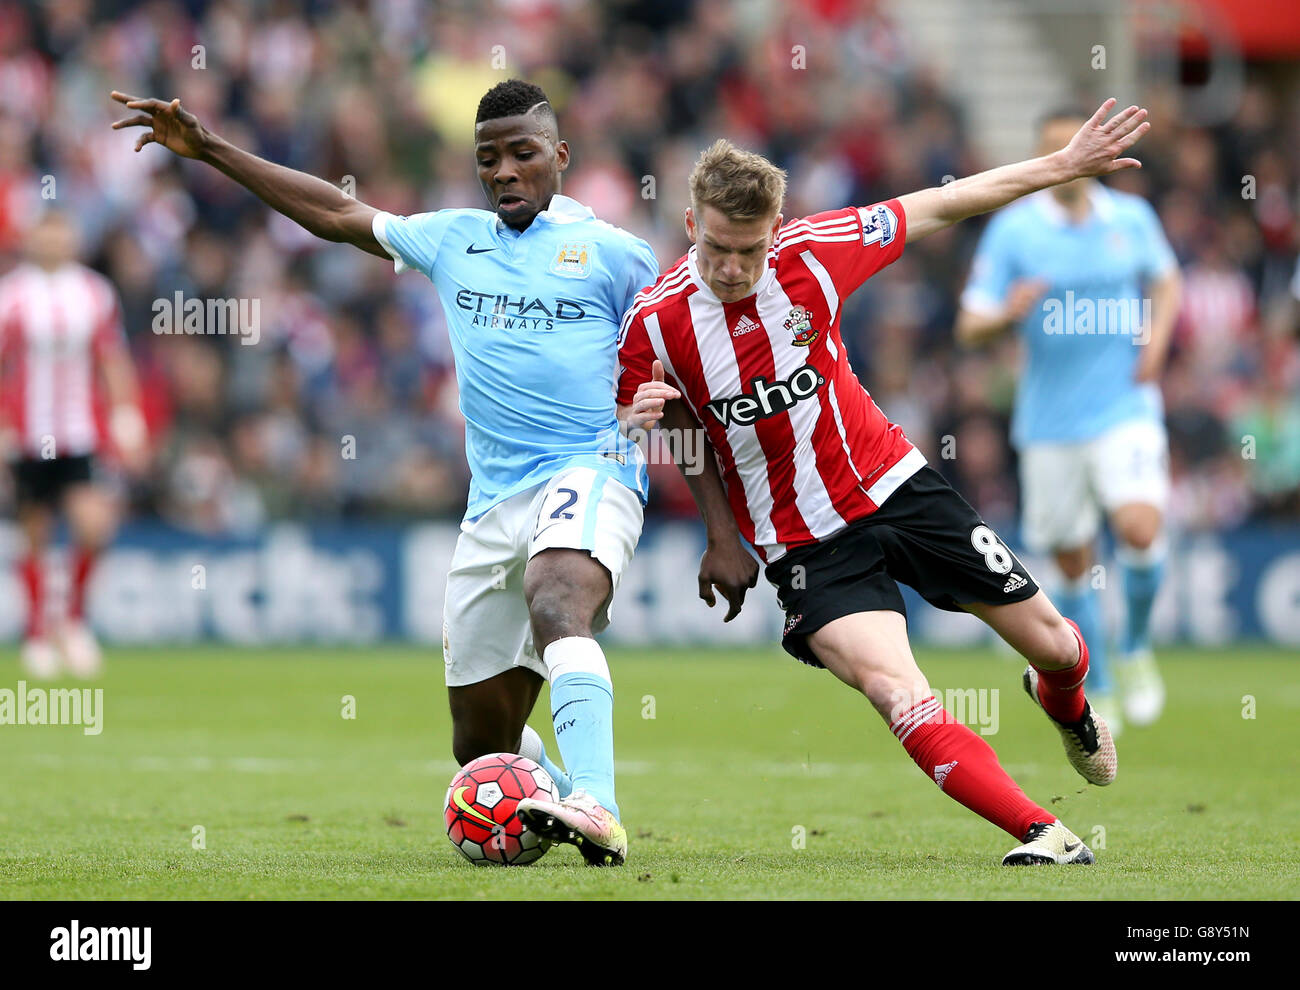 Southampton v Manchester City - Barclays Premier League - St Marys Immagini Stock